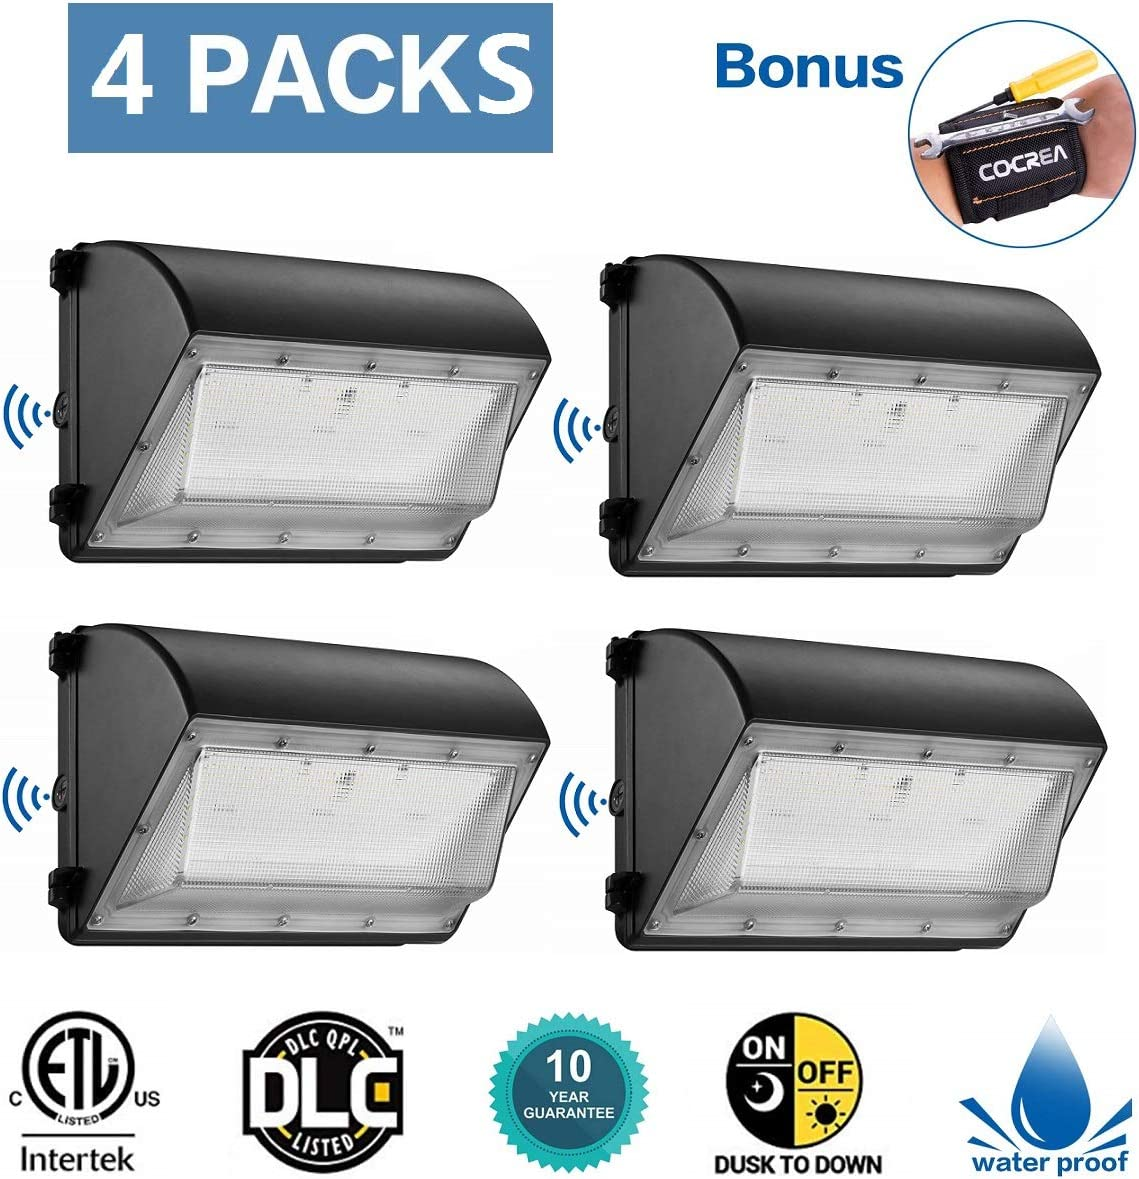 Dusk to Dawn LED Outdoor Lighting 4 Packs 60W,LED Wall Pack with Photocell 5000K 7,200lm 100-277VAC, Waterproof Commercial Wall Pack, 210W-300W HPS MH Replacement, ETL DLC Listed 10 Year Warranty